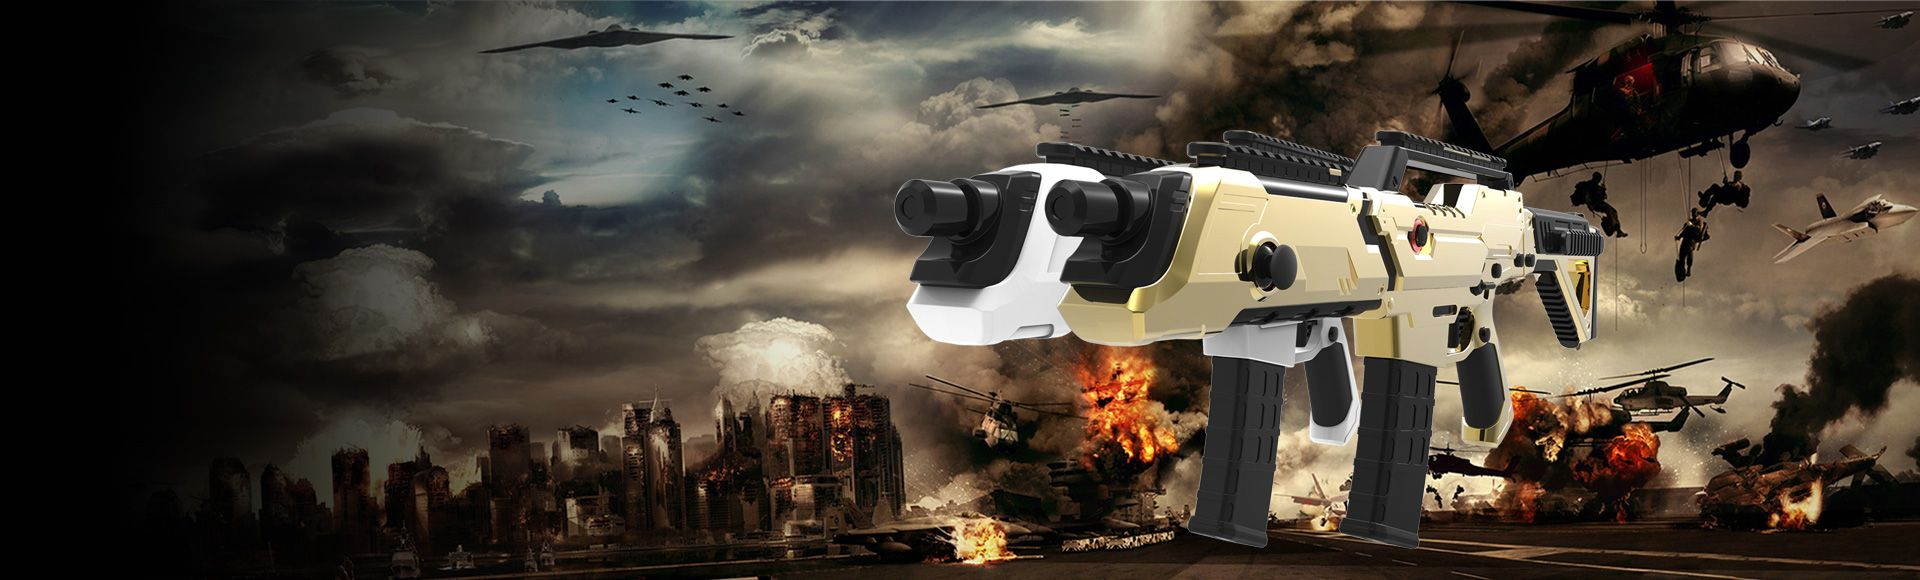 PP GUN - A Gun-Shaped Controller for FPS Game Supporting Mobile Devices, Oculus